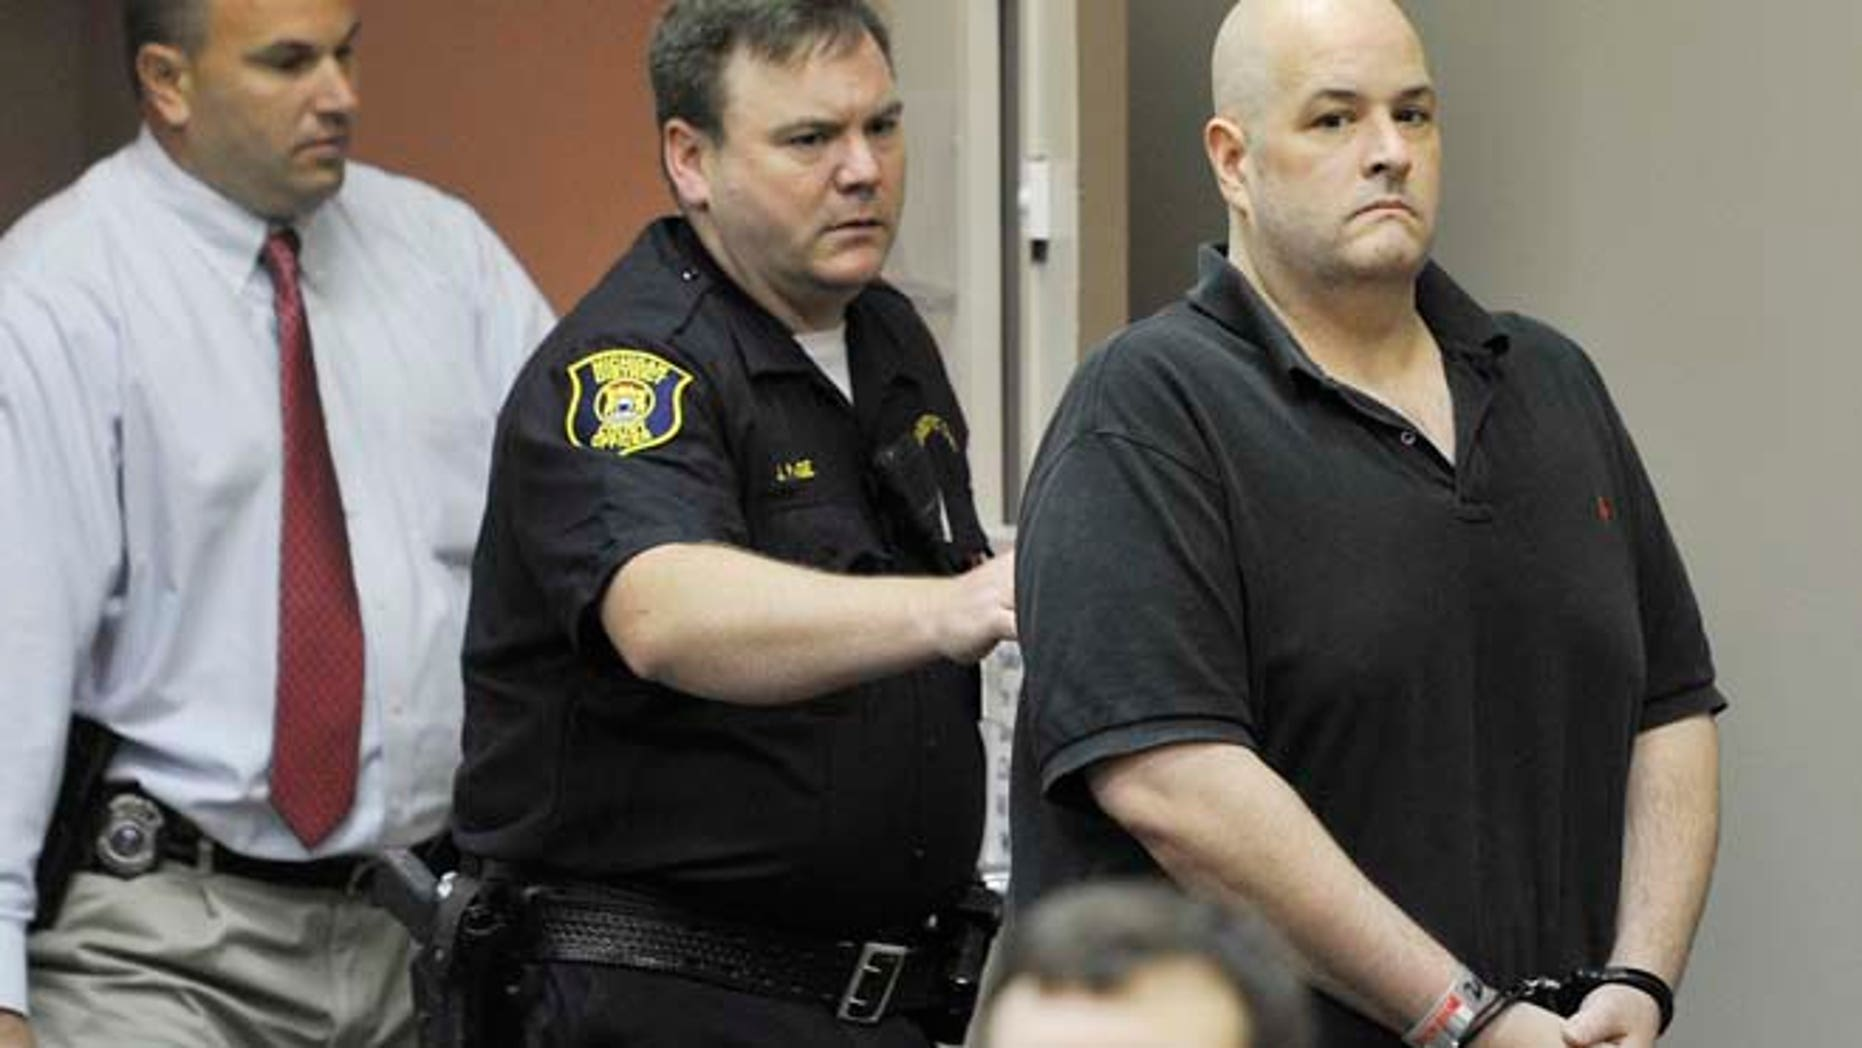 Aug. 20, 2012: In this file photo, Roger Bowling, right, is escorted into a courtroom by police and detectives for a preliminary examination at the 24th District Court in Allen Park, Mich. (AP/The Detroit News)